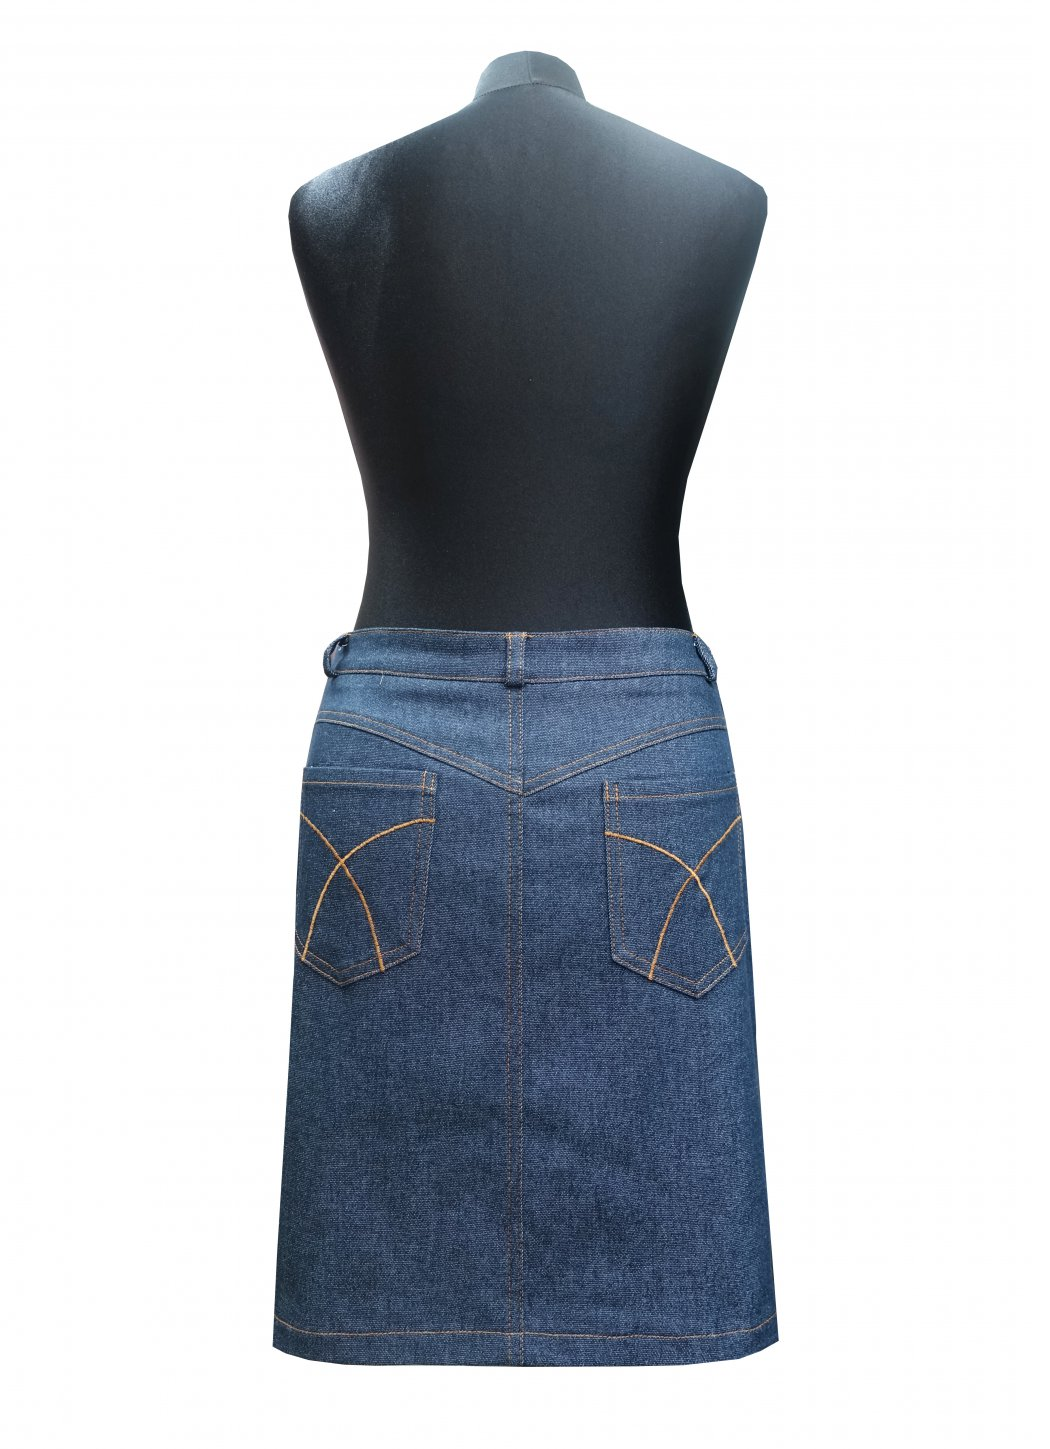 Denim skirt Aspenielle Female dress